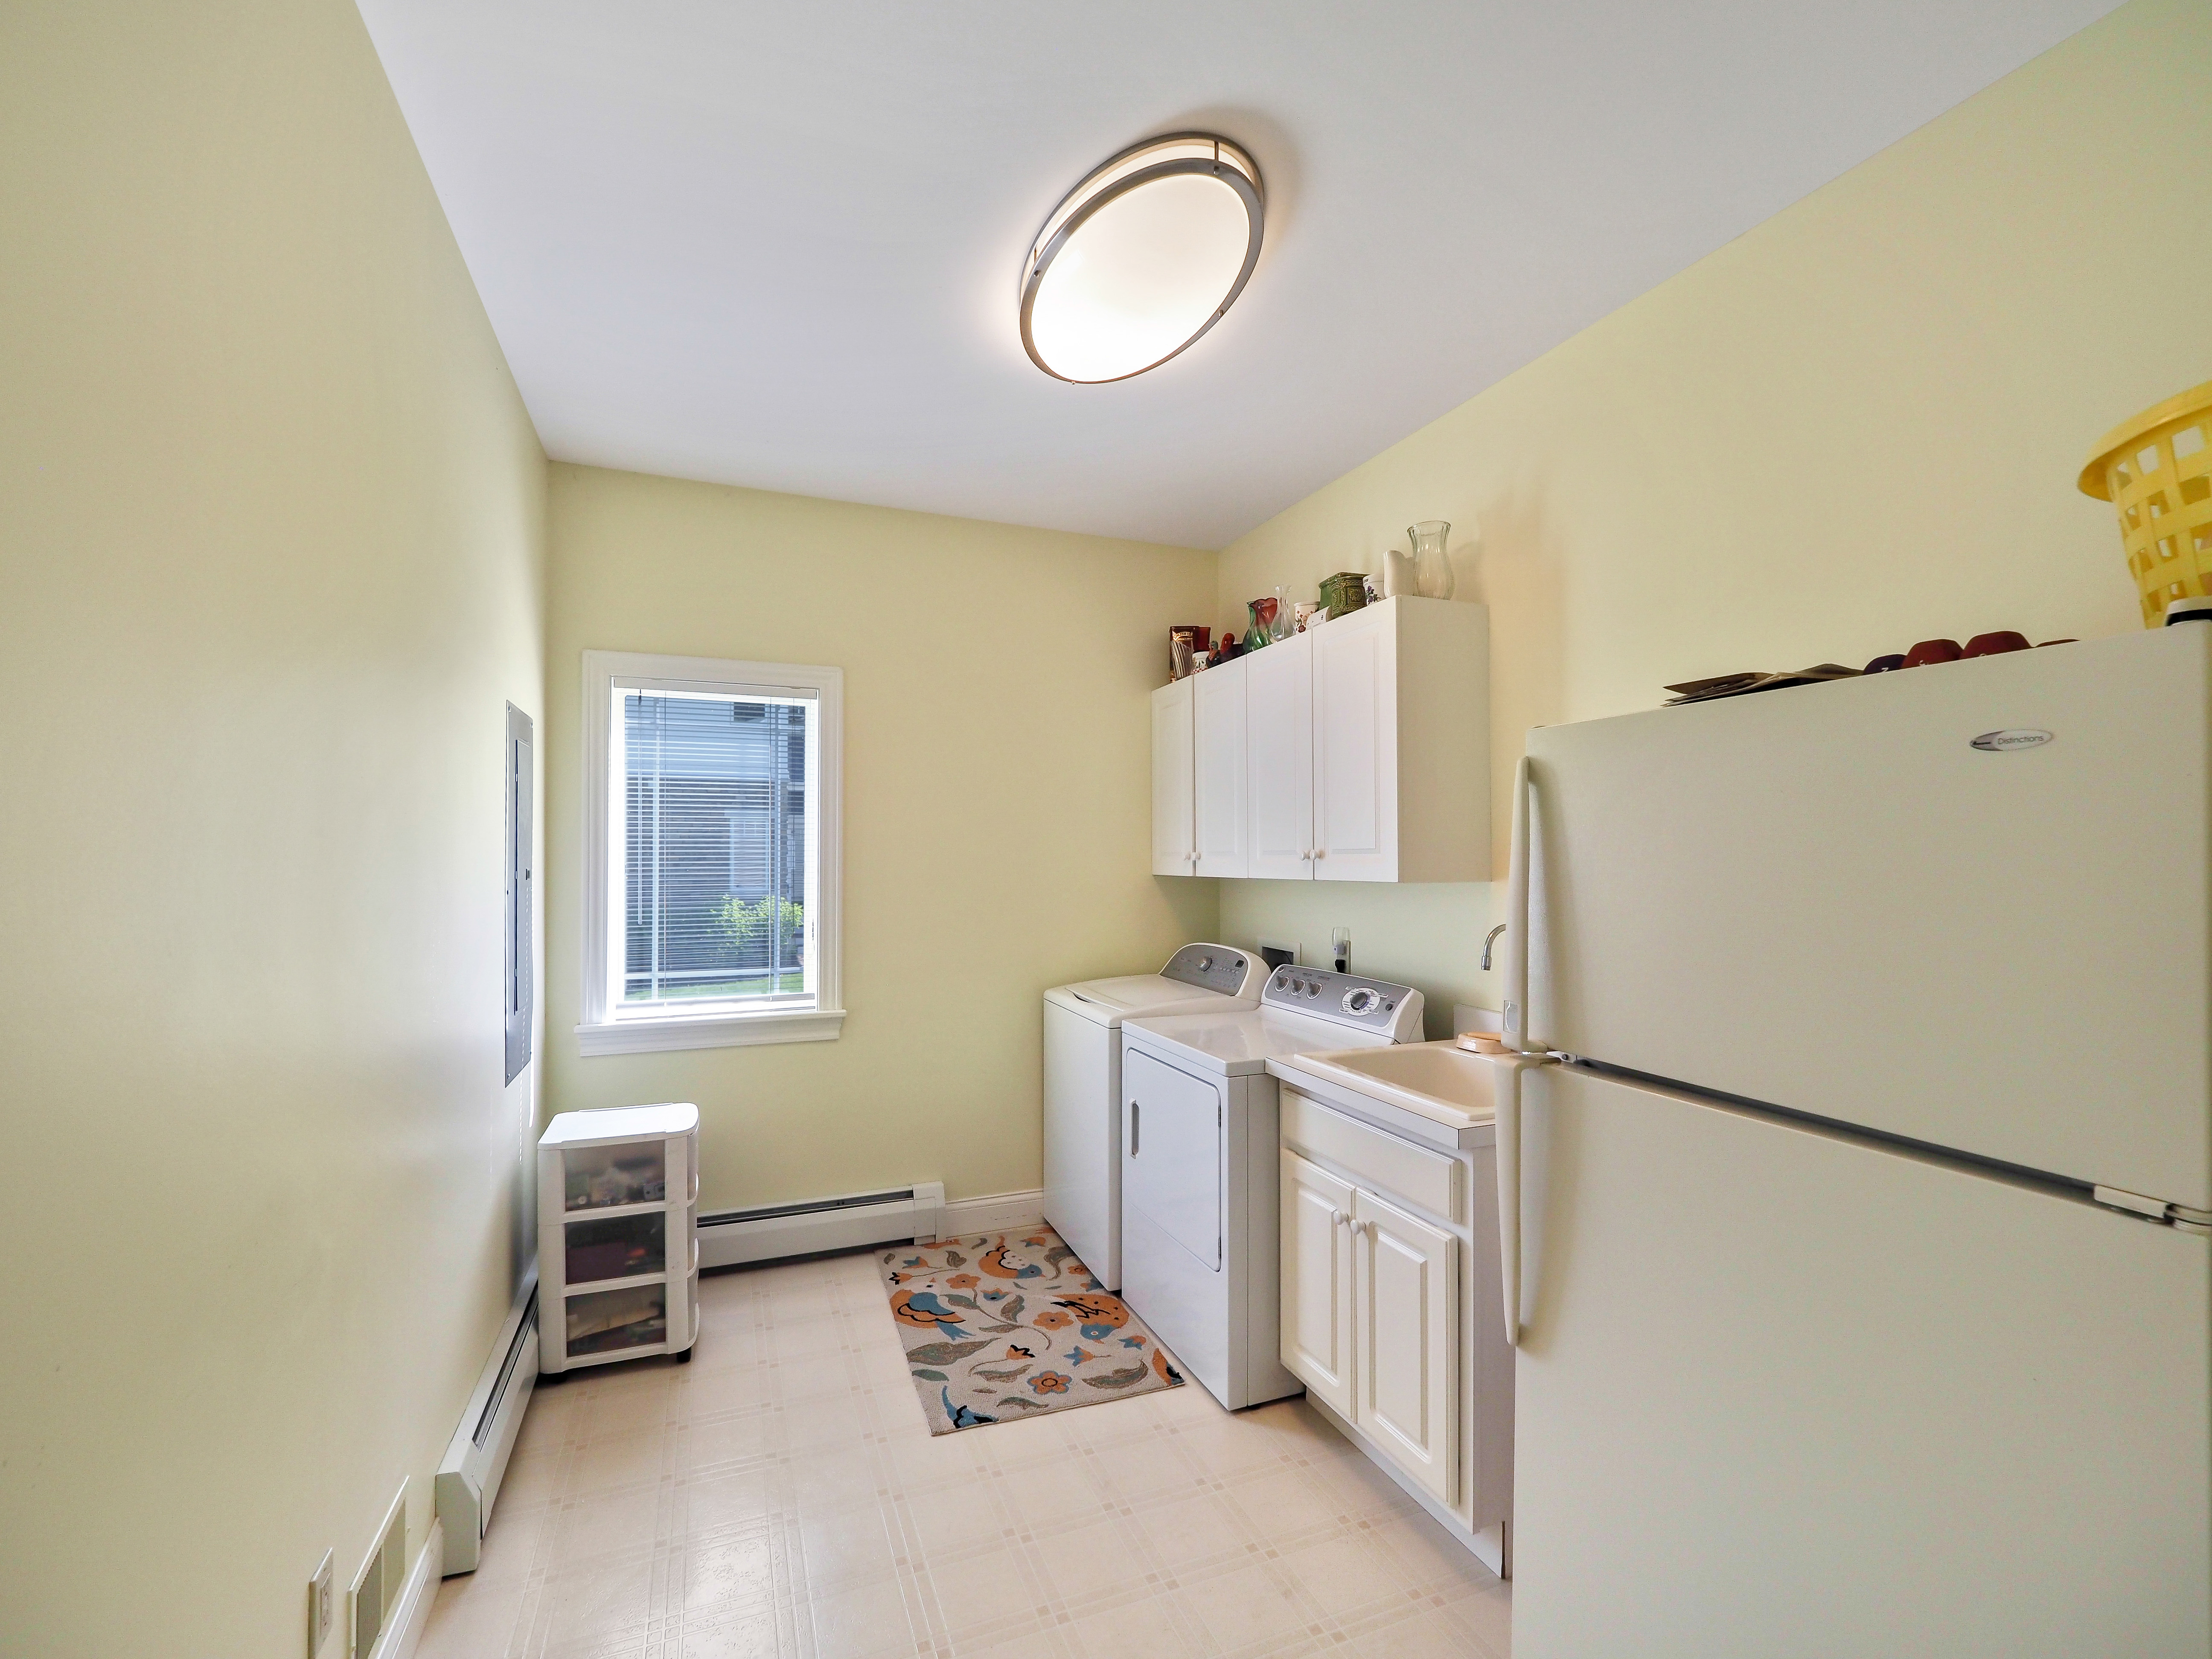 Mud Room with Laundry